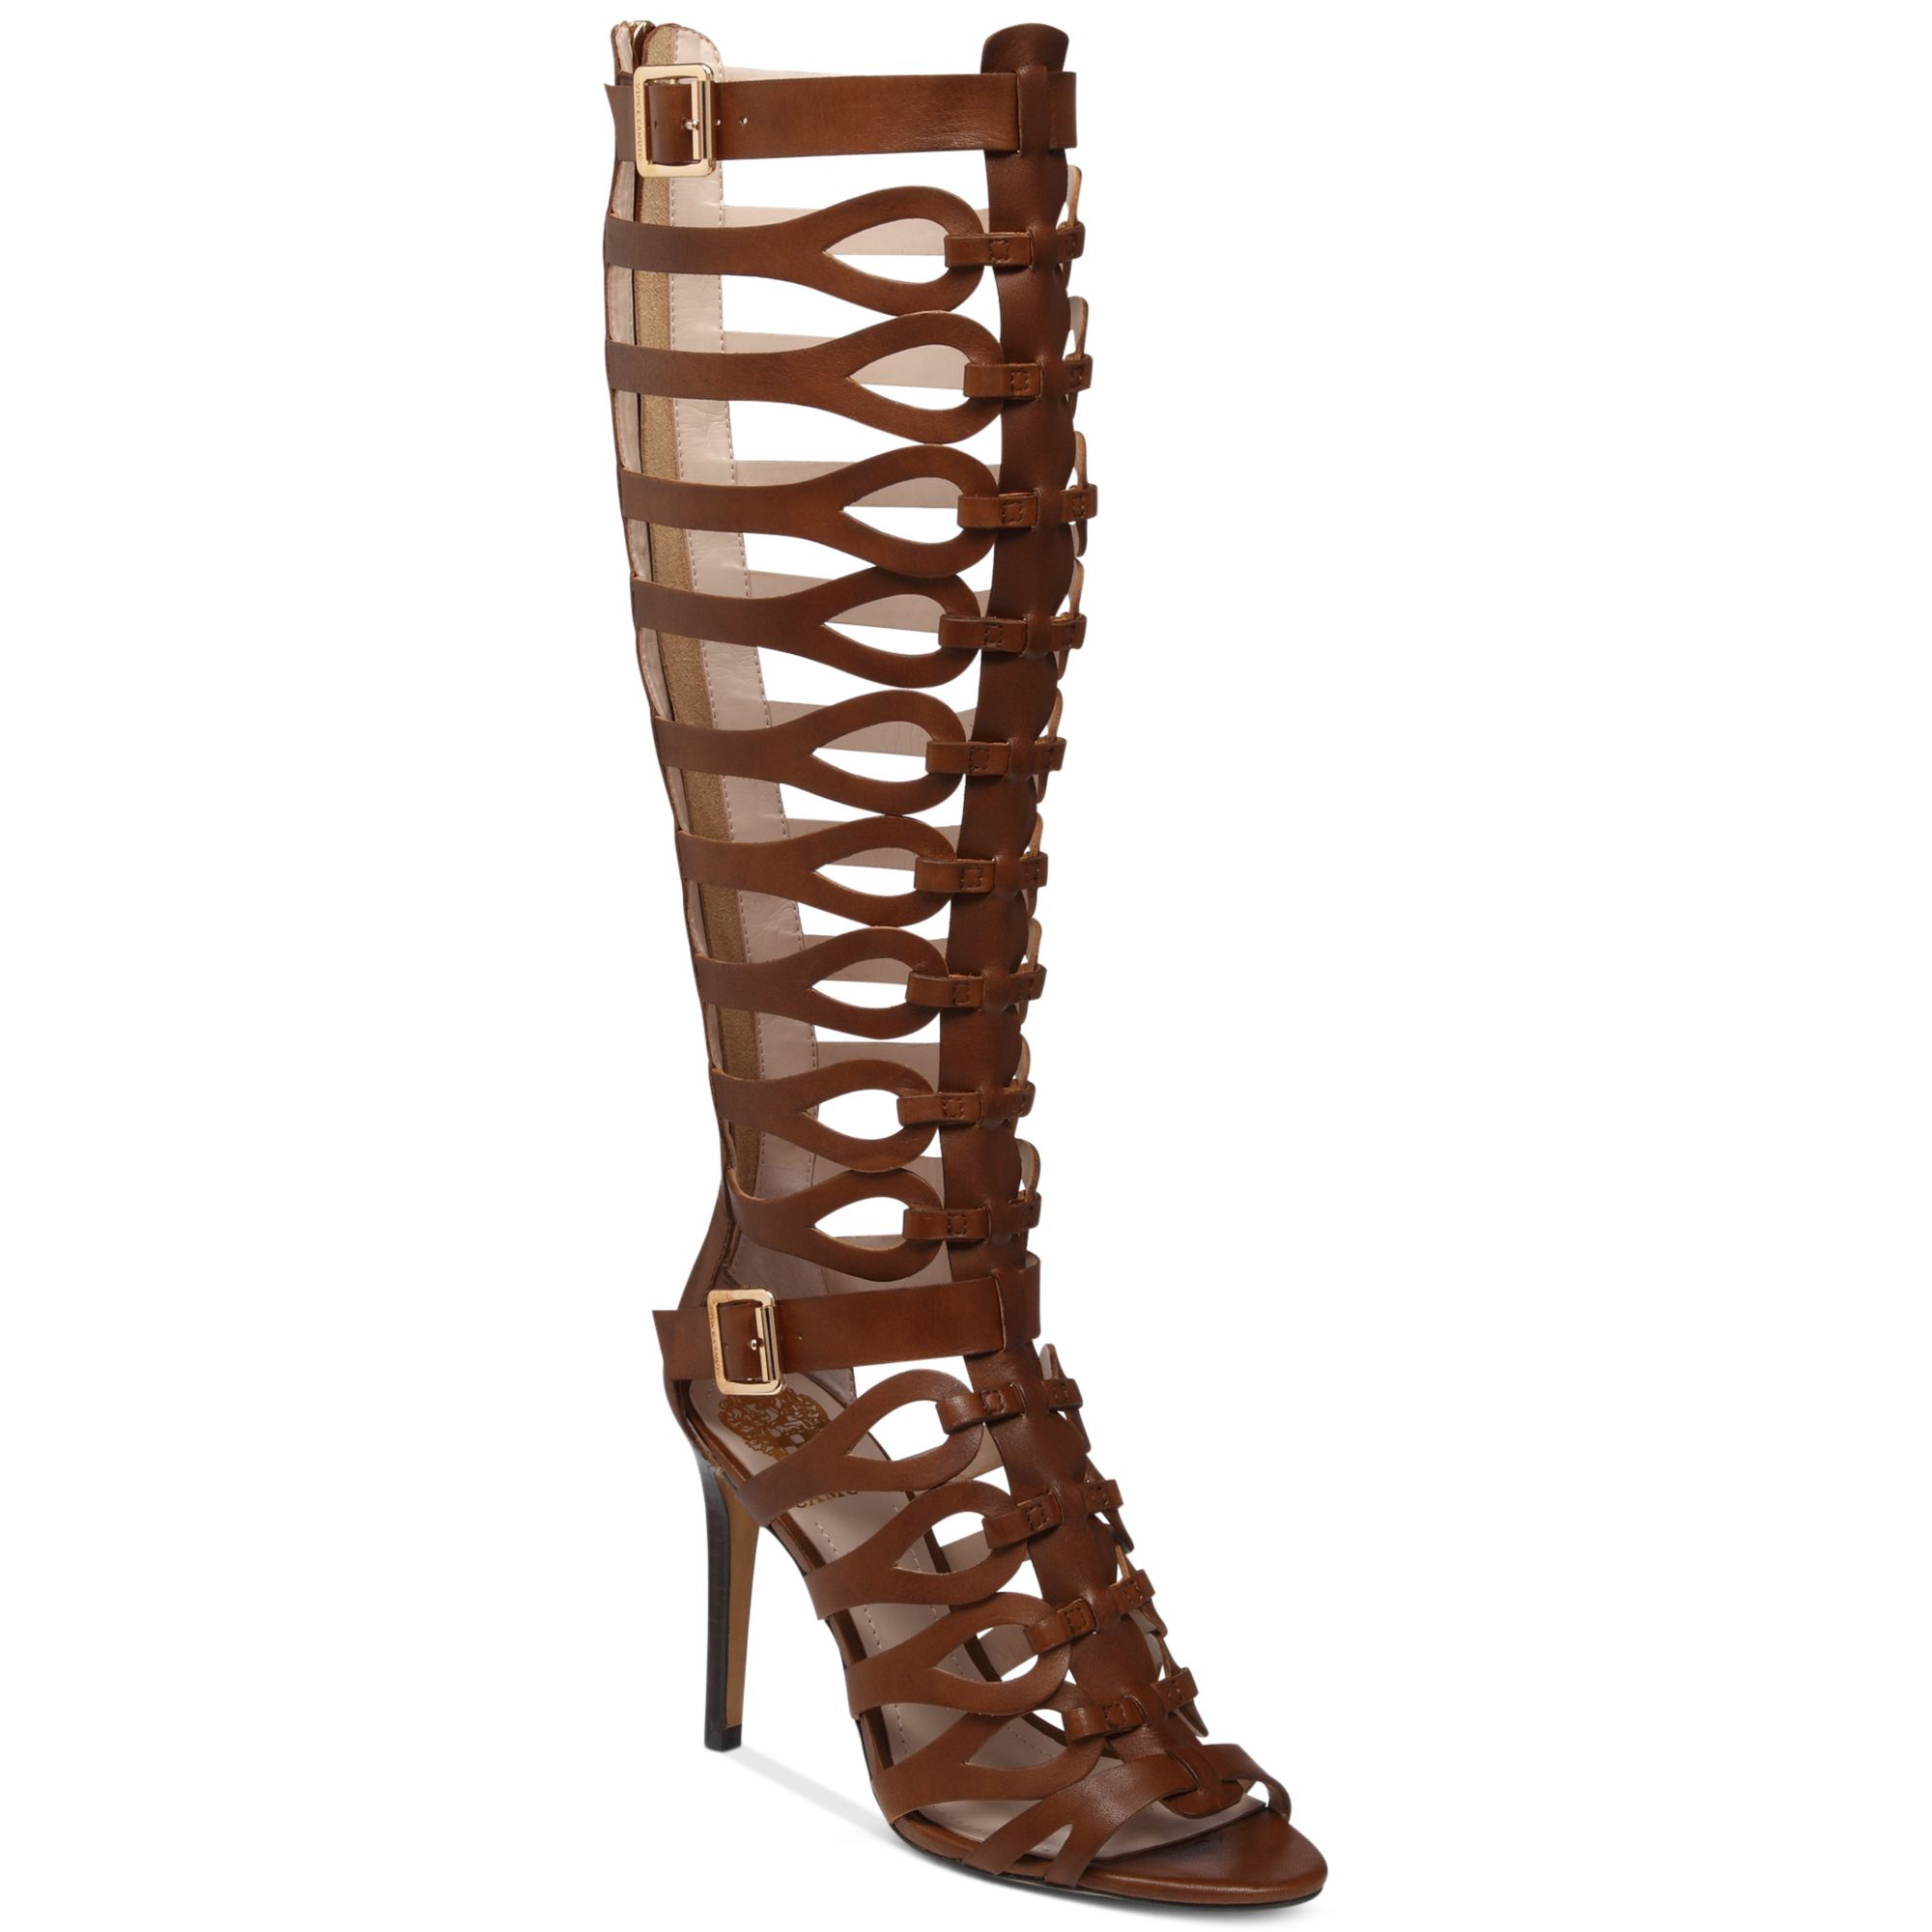 Vince camuto Omera Tall Gladiator Heel Sandals in Brown | Lyst